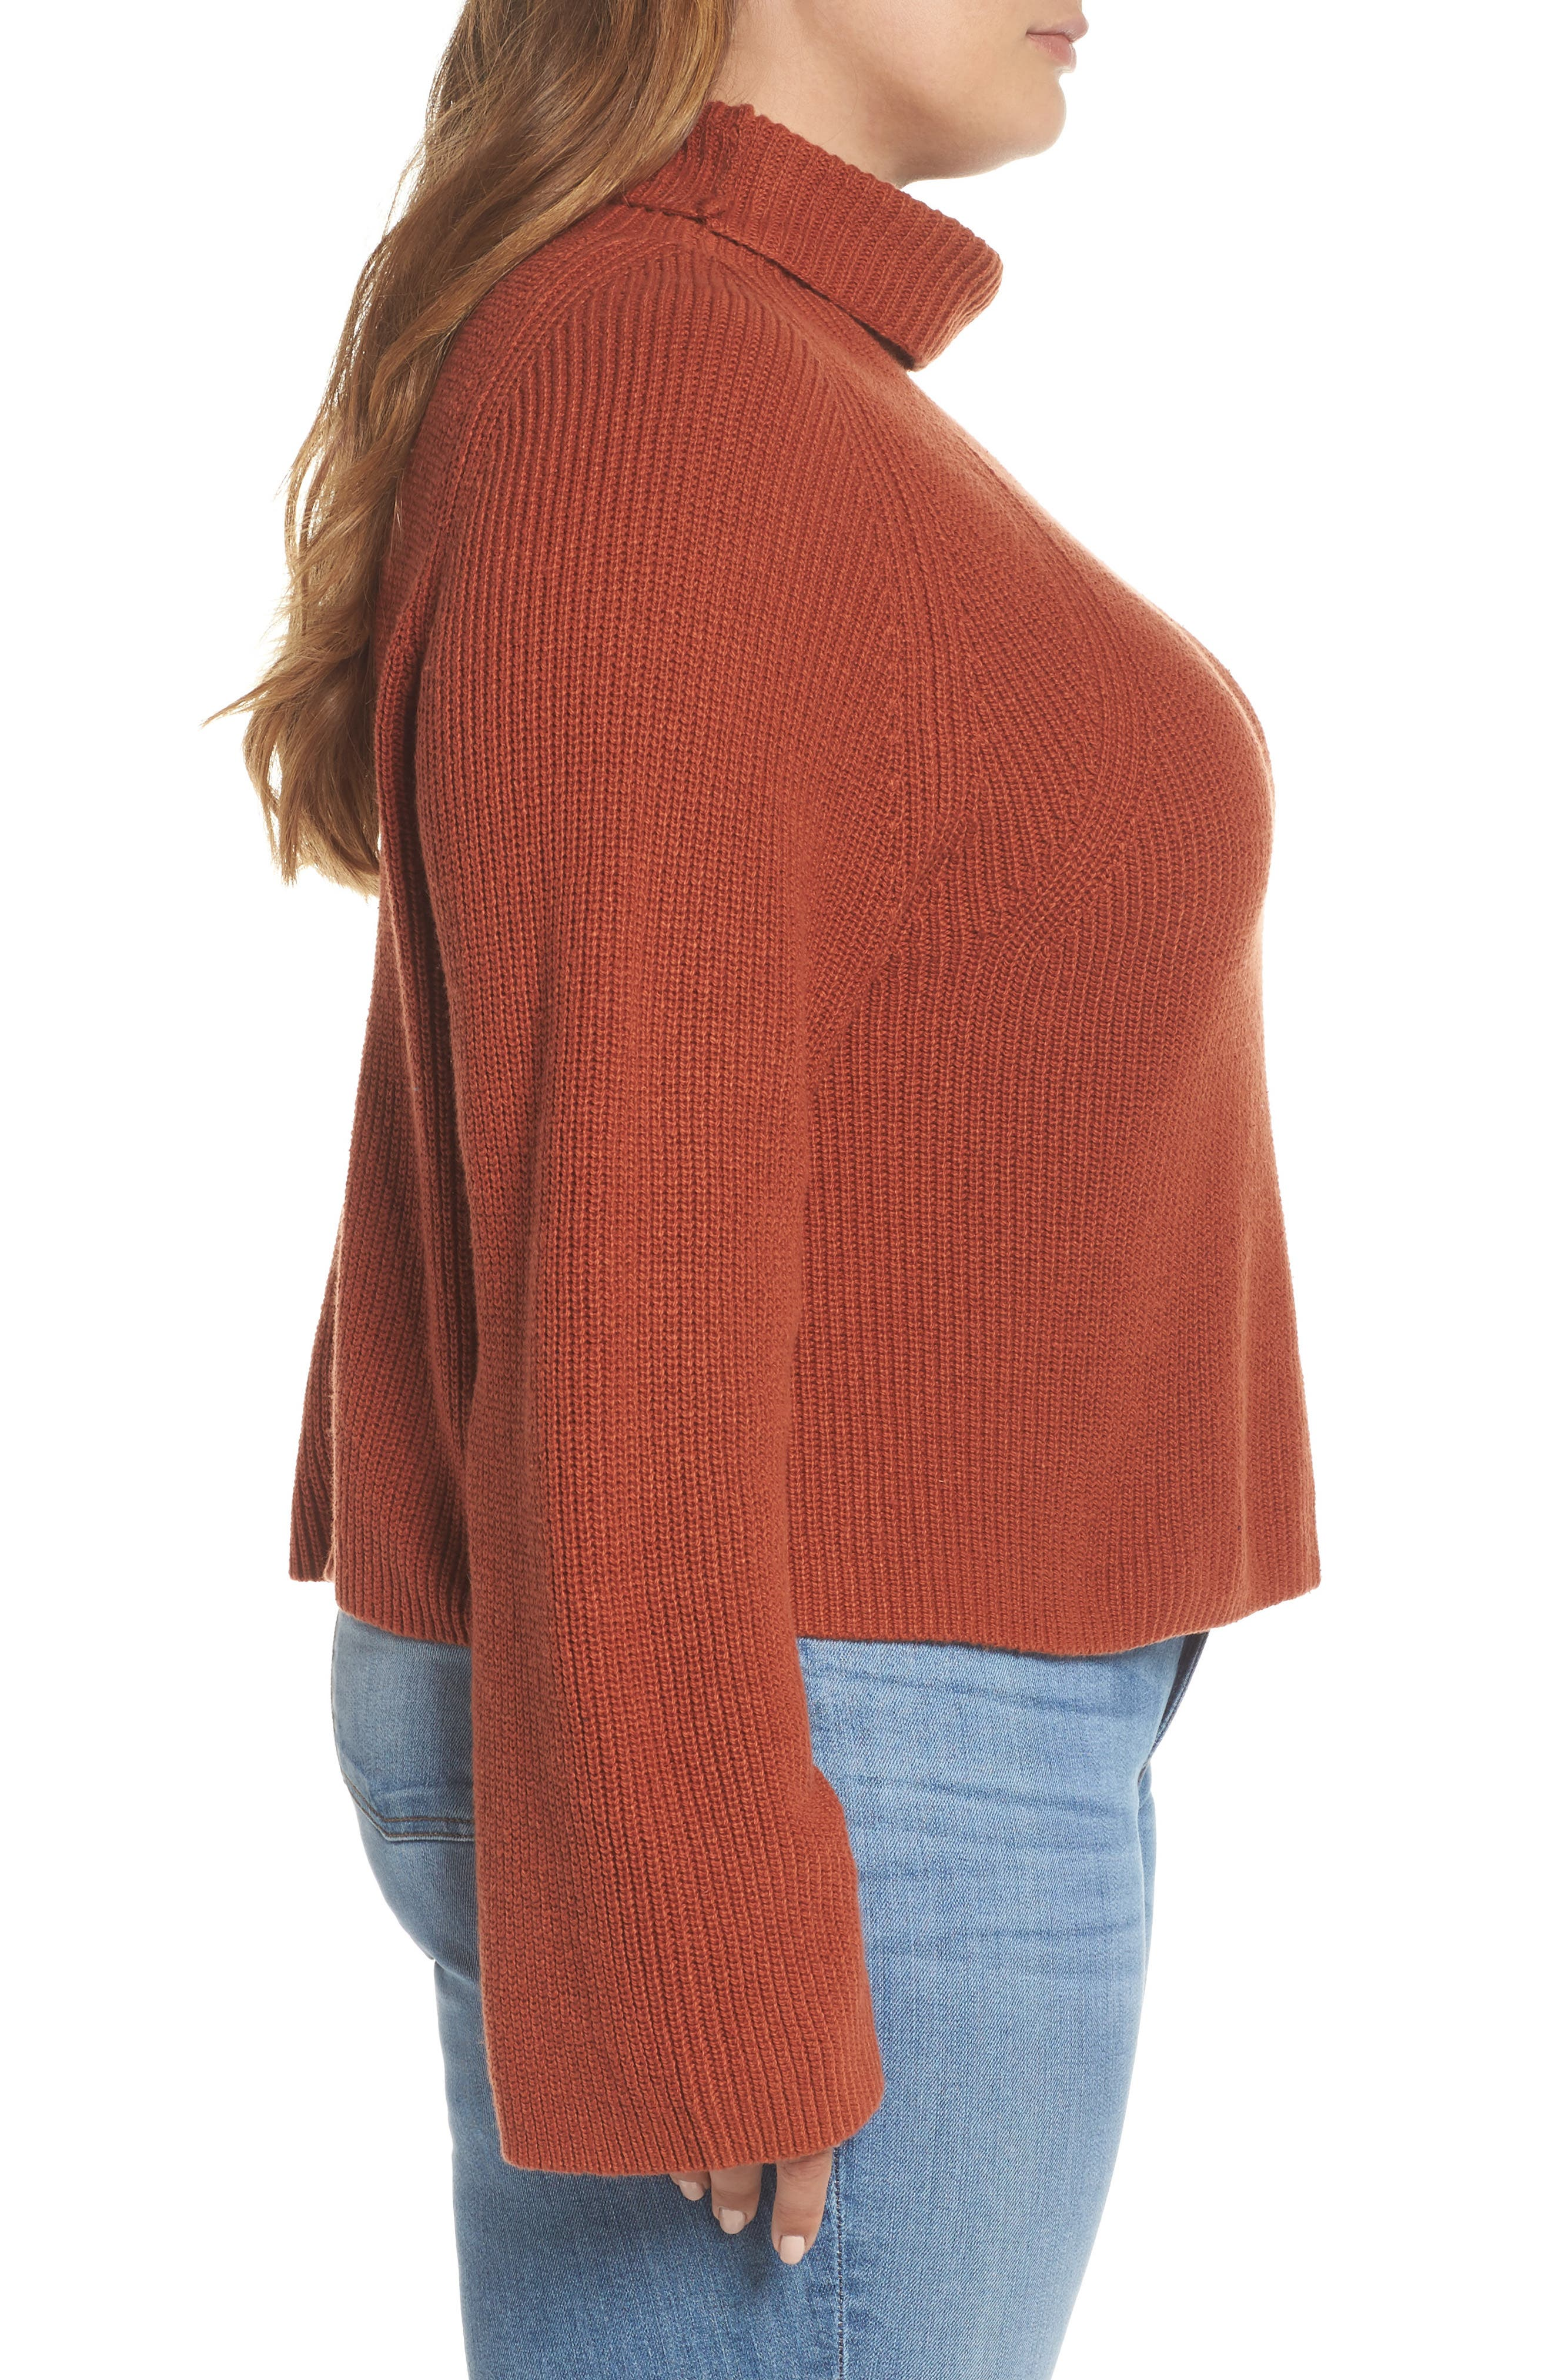 Transfer Stitch Turtleneck Sweater,                             Alternate thumbnail 9, color,                             BROWN SPICE